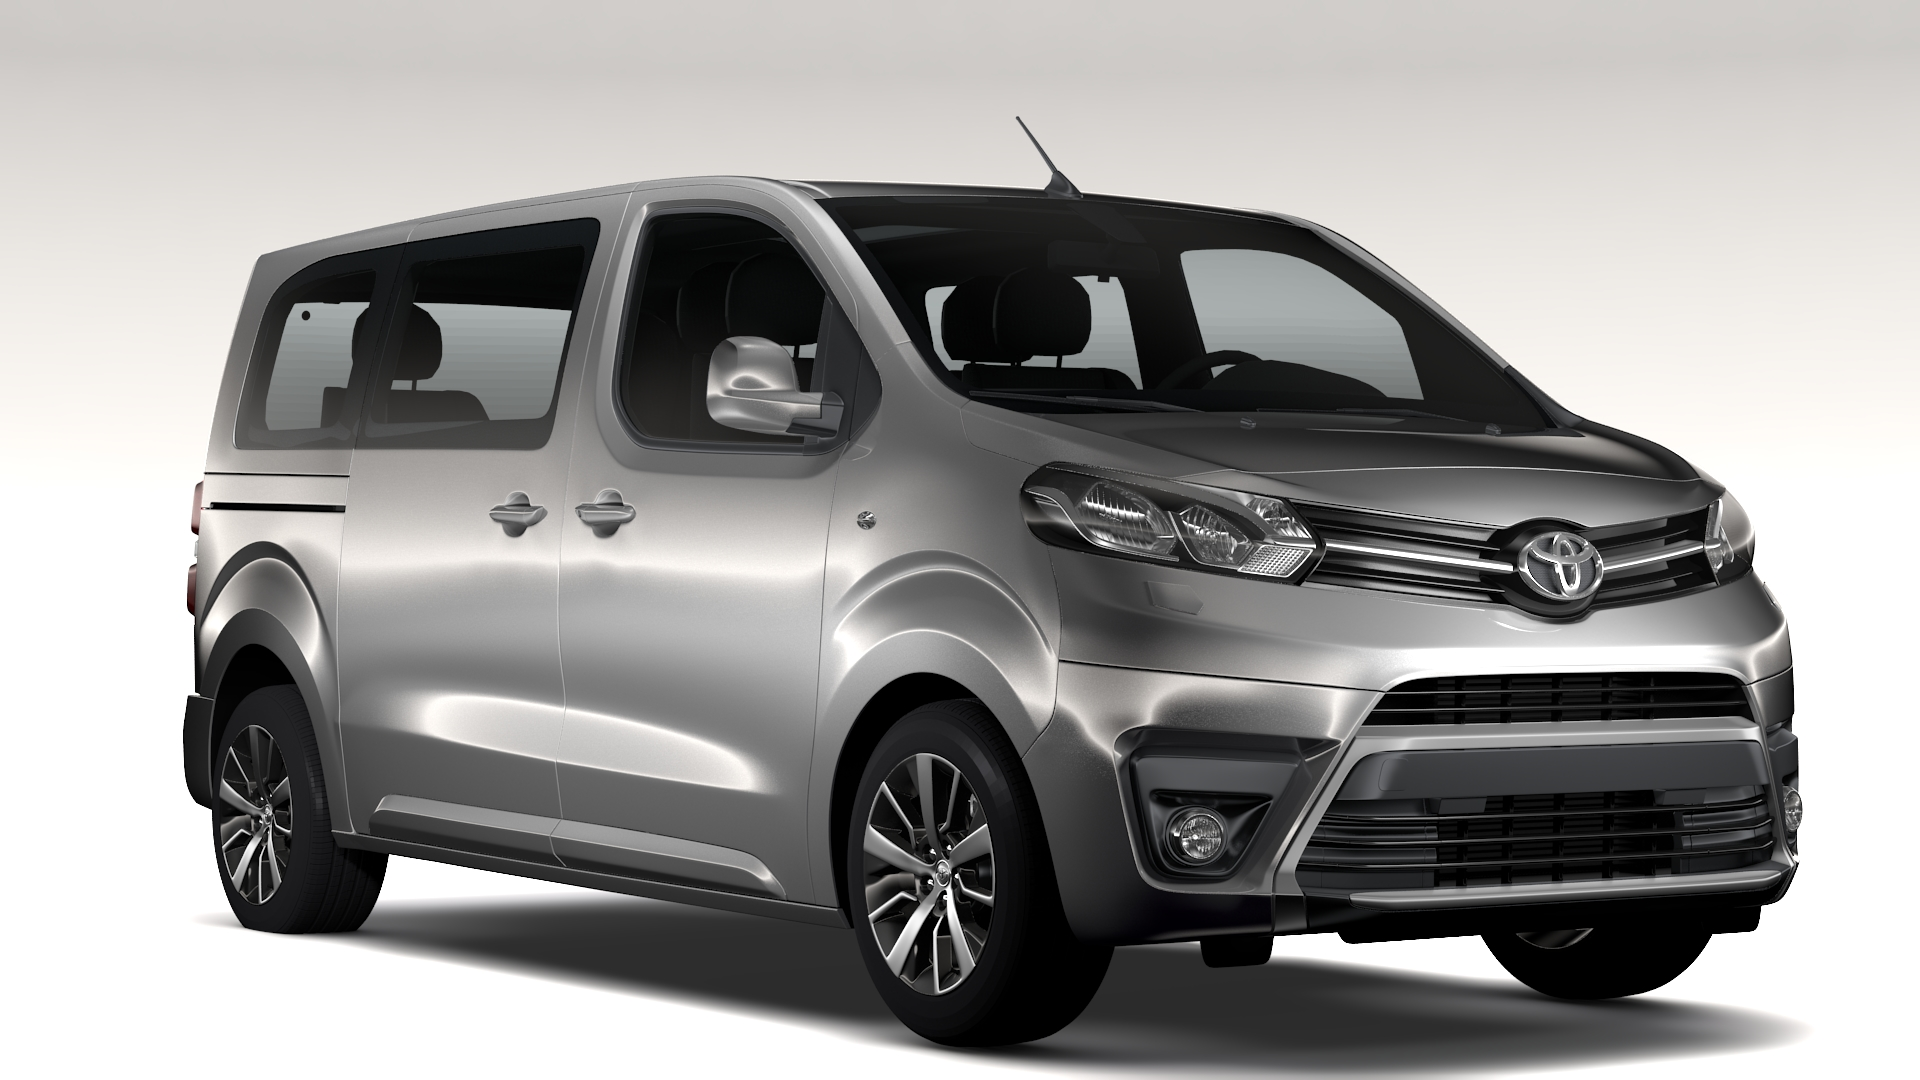 toyota proace verso l2 2017 3d model buy toyota proace verso l2 2017 3d model flatpyramid. Black Bedroom Furniture Sets. Home Design Ideas